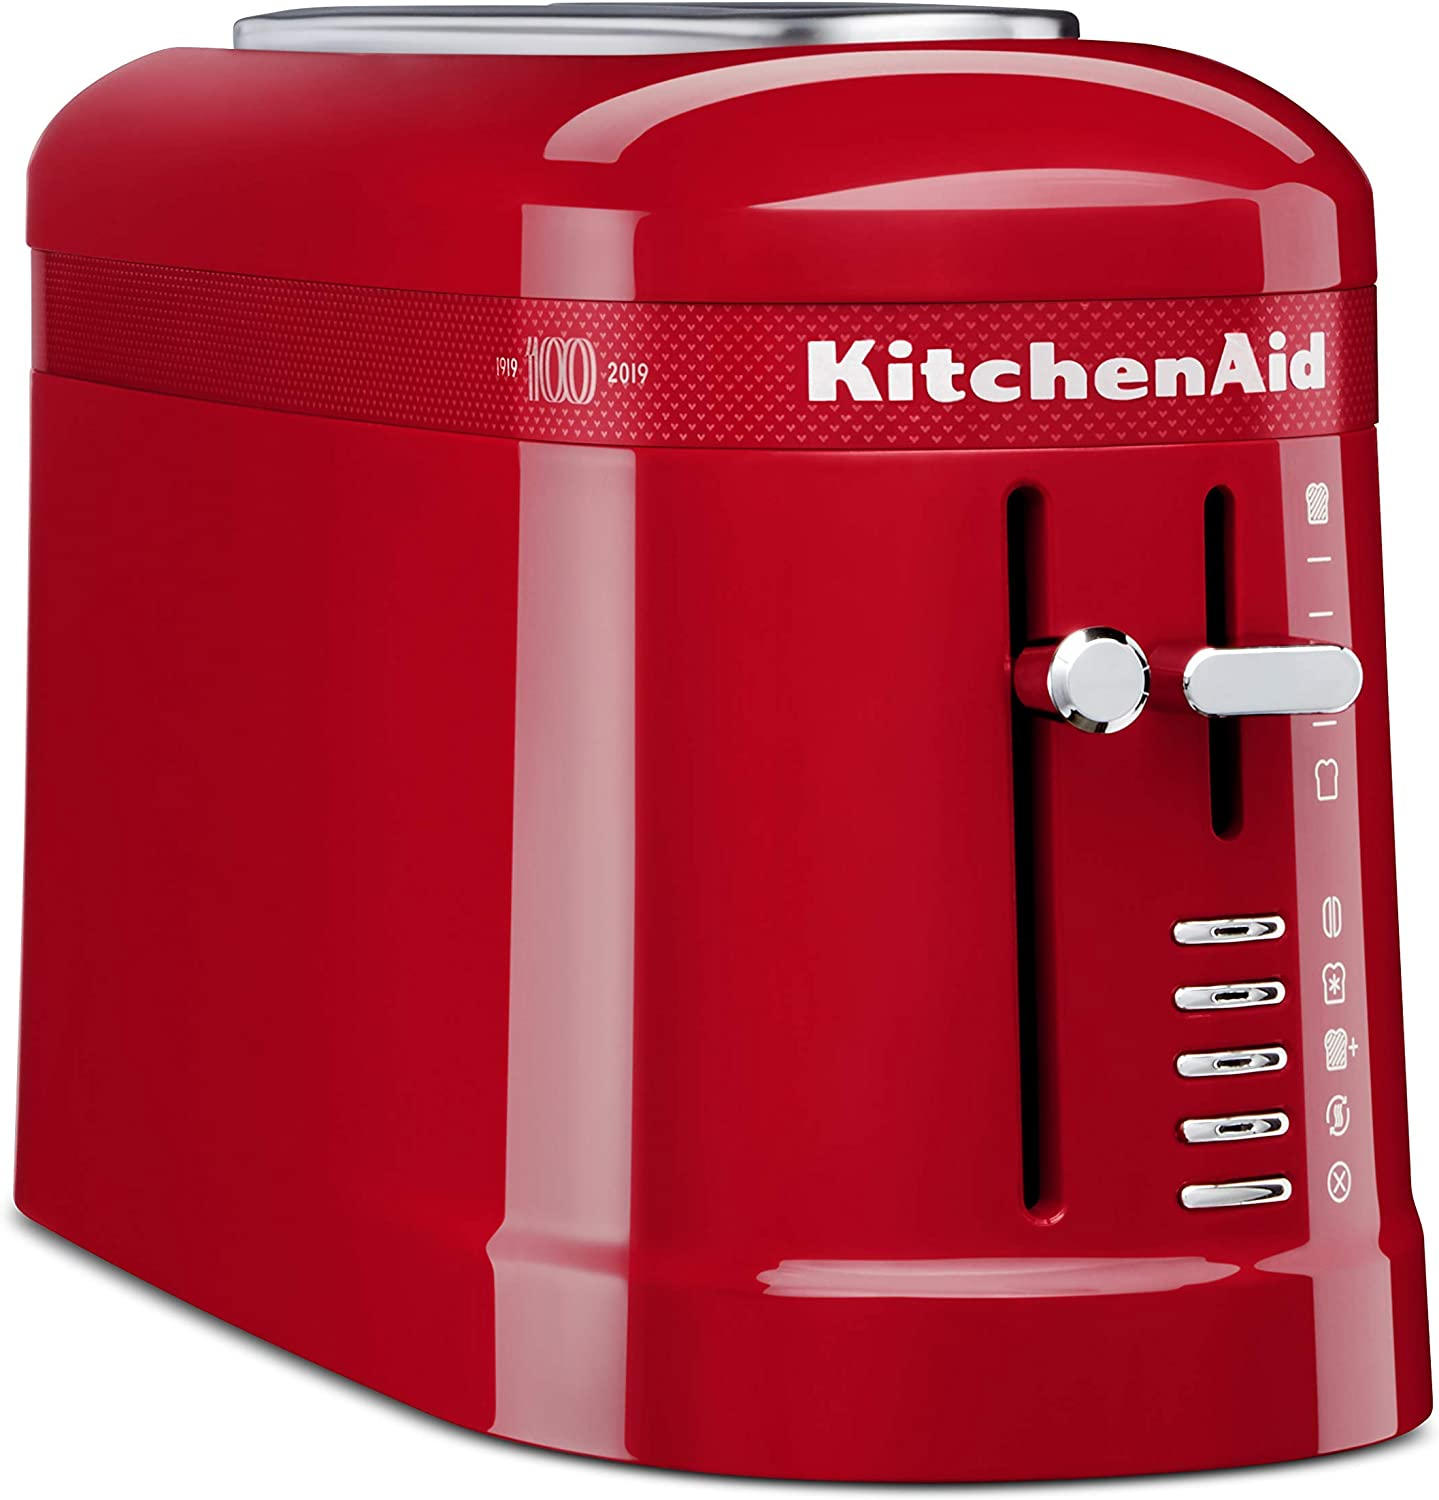 KitchenAid KMT3115QHSD 100 Year Limited Edition Queen of Hearts Toaster, 2-Slice, Passion Red (Renewed)